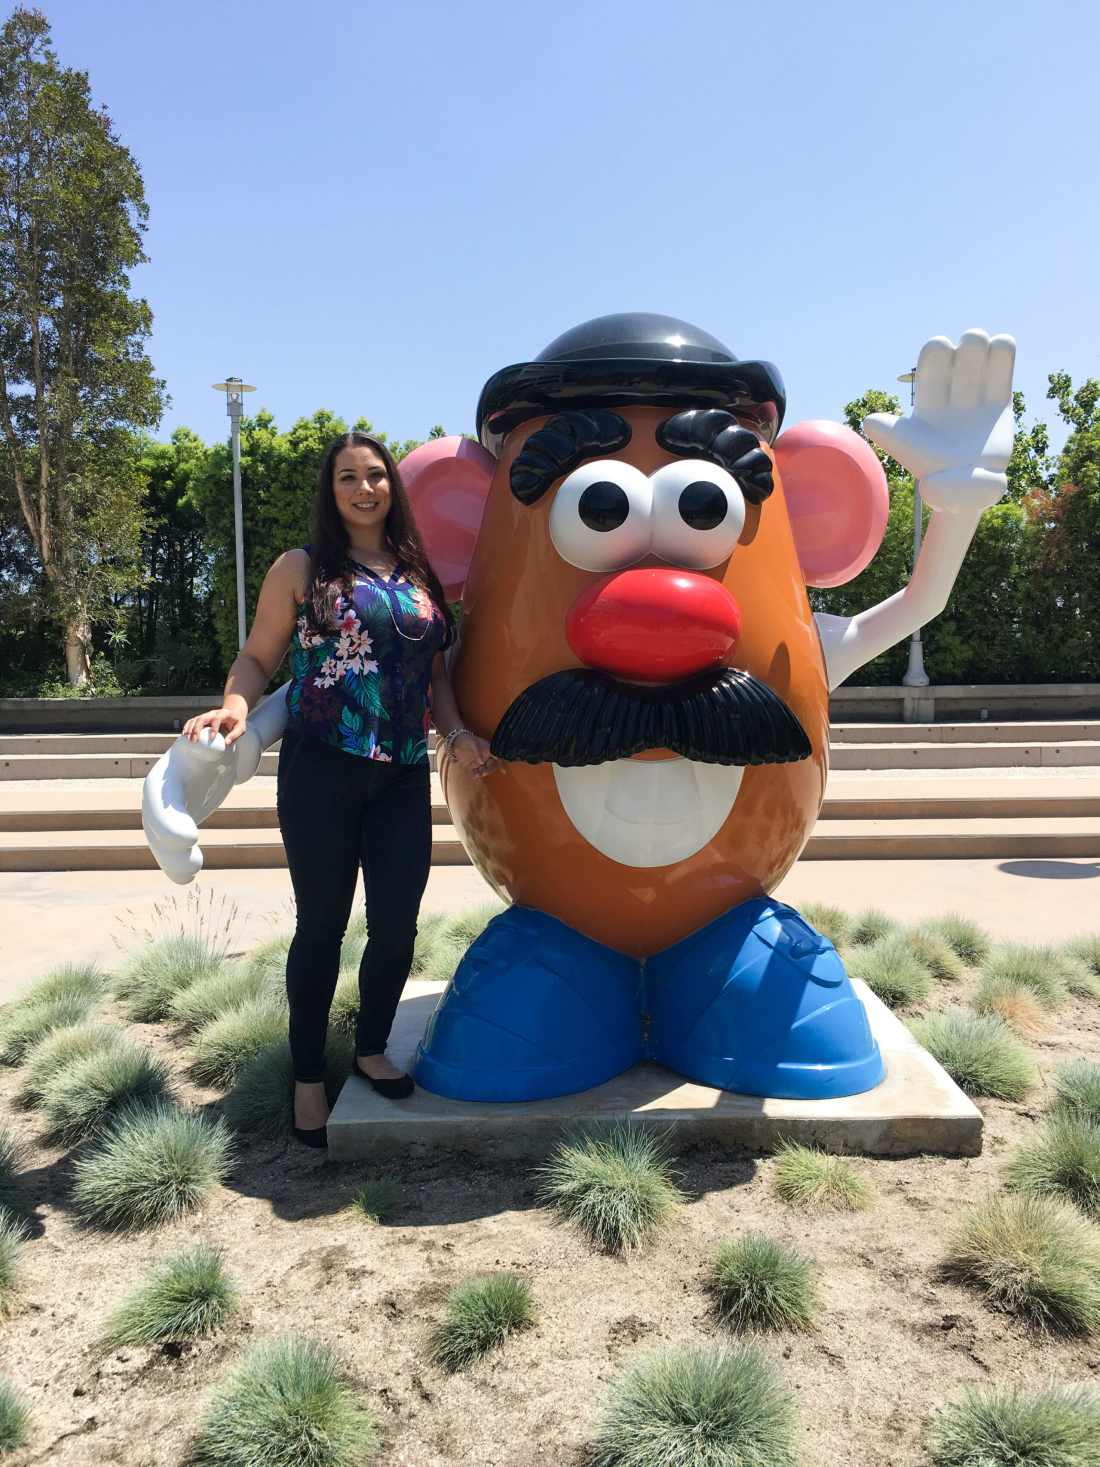 Jessica Simms Jays Sweet N Sour Life at Disney Channel animation Building stnading with Mr. Potato Head. Read my full article on Disney Channel's Big City Greens, A Peek Inside This NEW 2 Funny + 1 Part Heart Series.